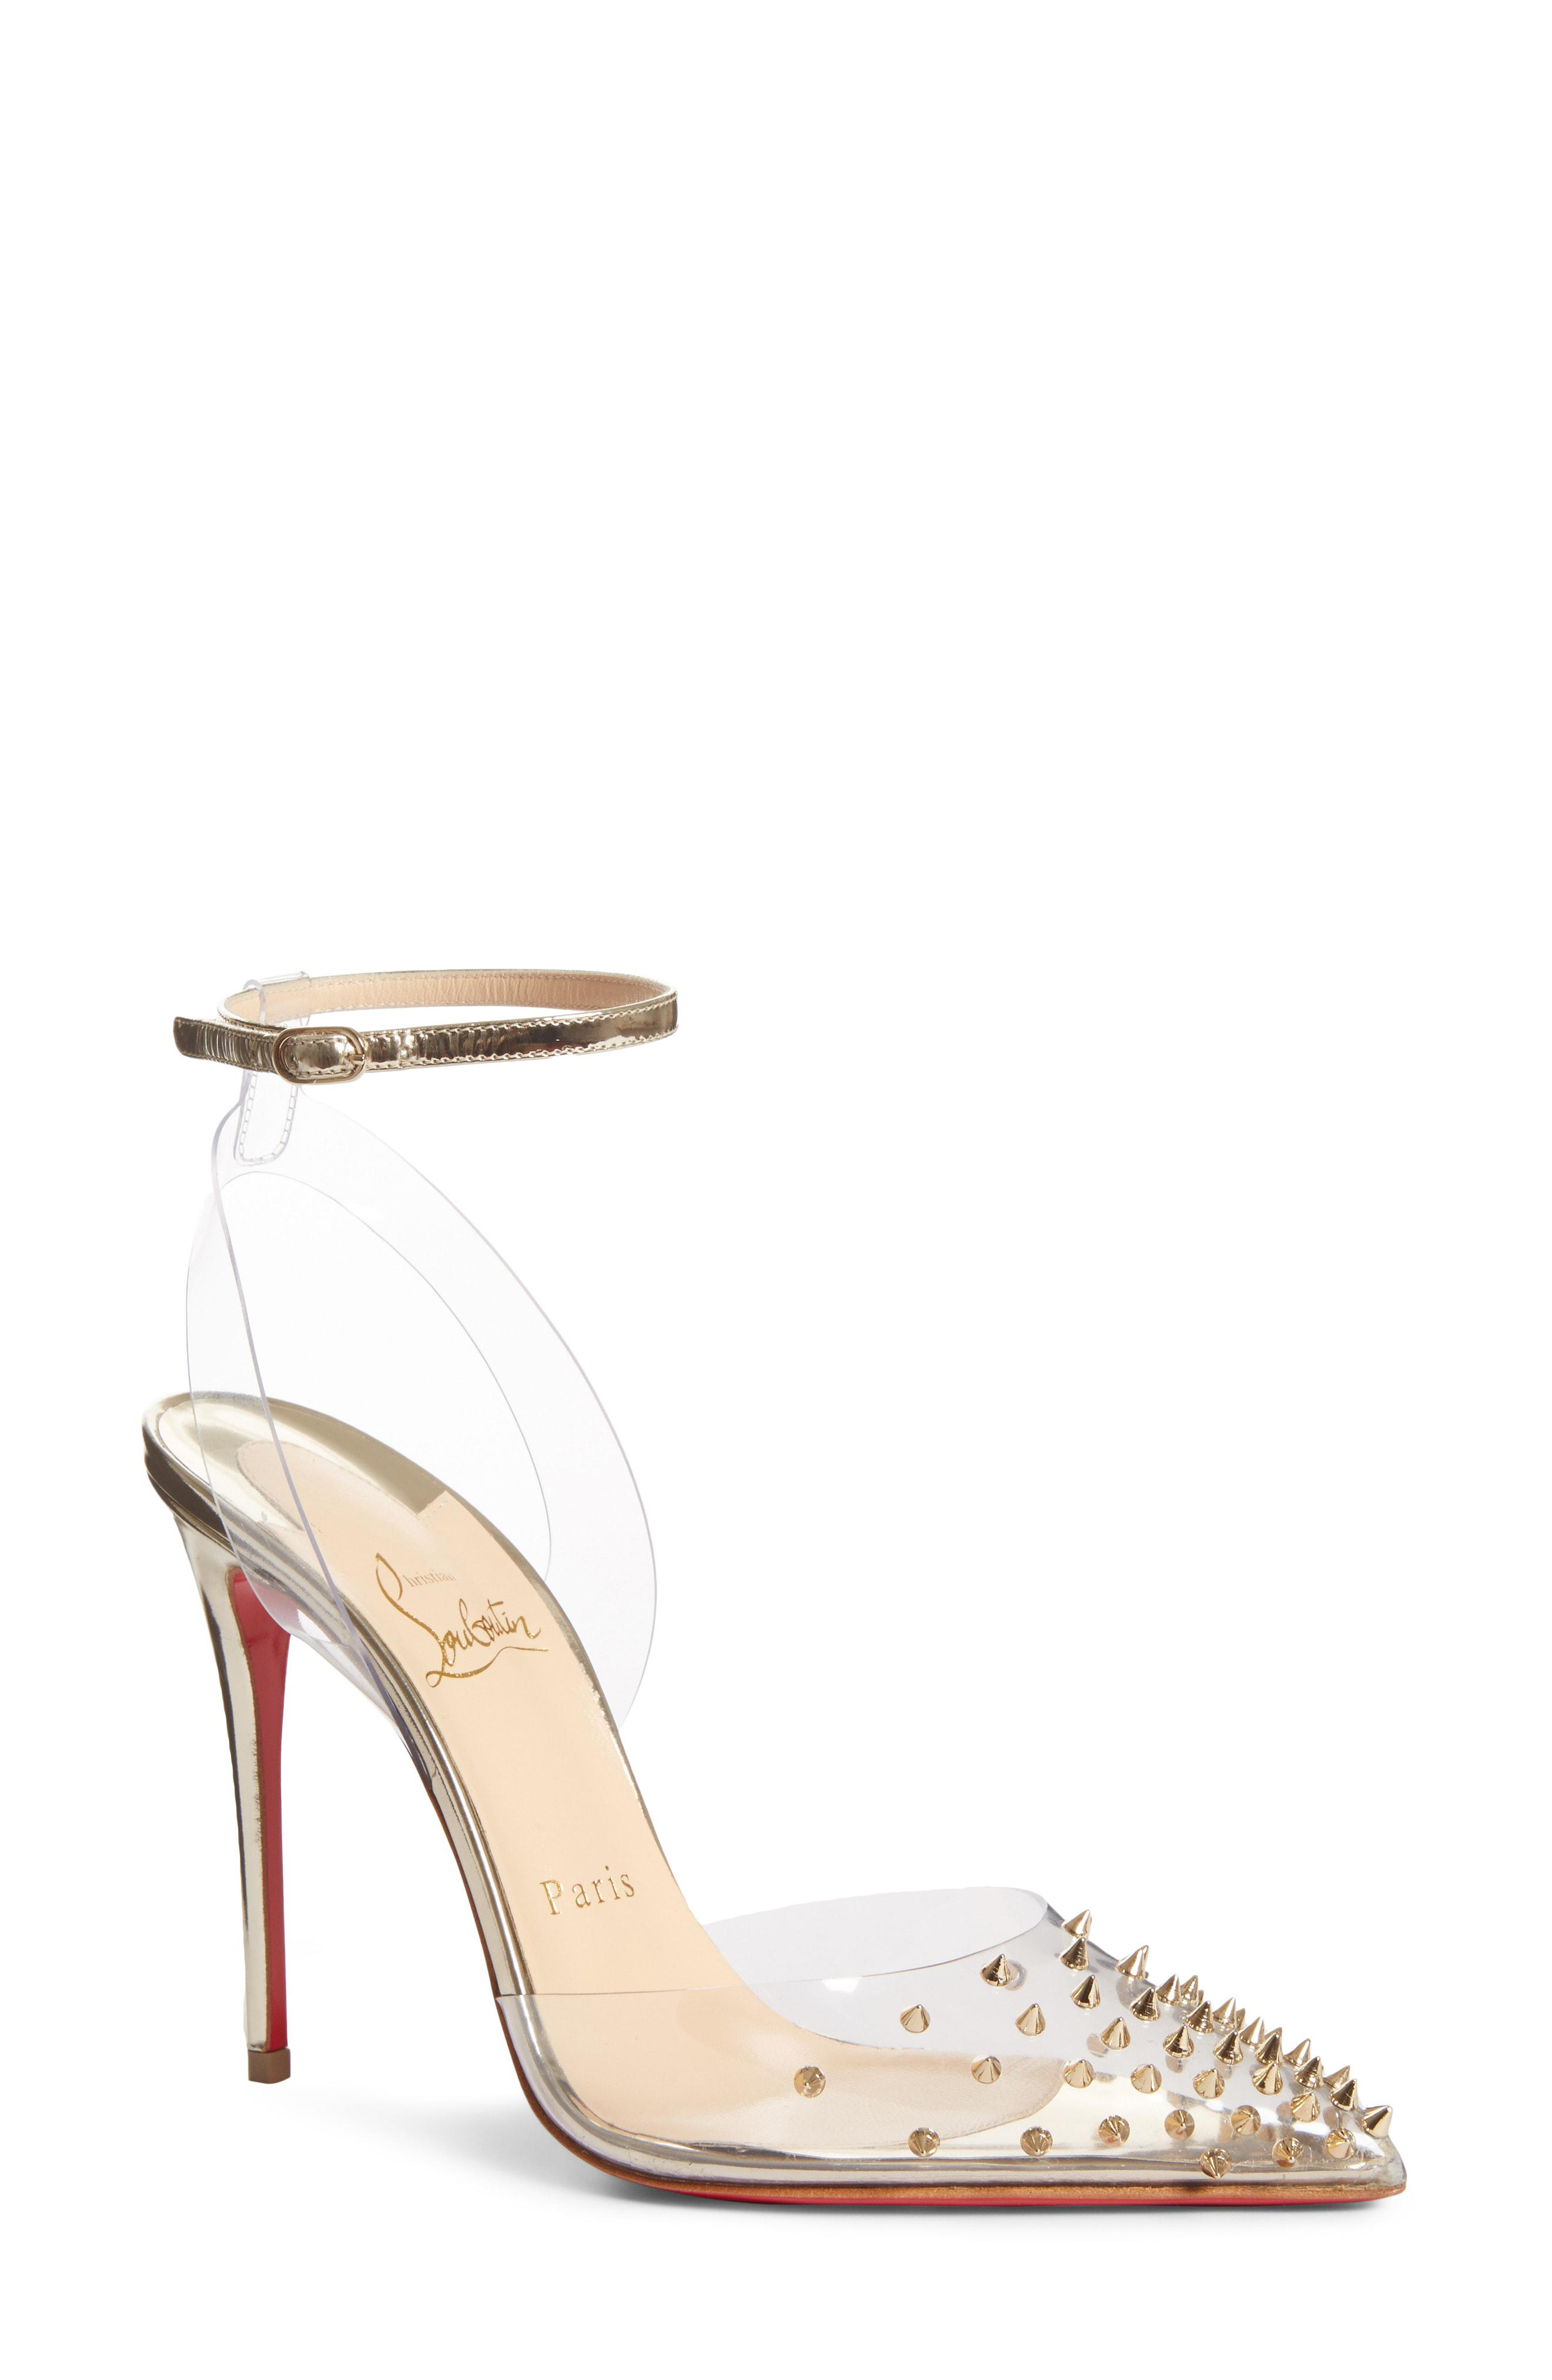 b4c1f63bac1 Lyst - Christian Louboutin Spikoo Clear Ankle Strap Pump in Metallic